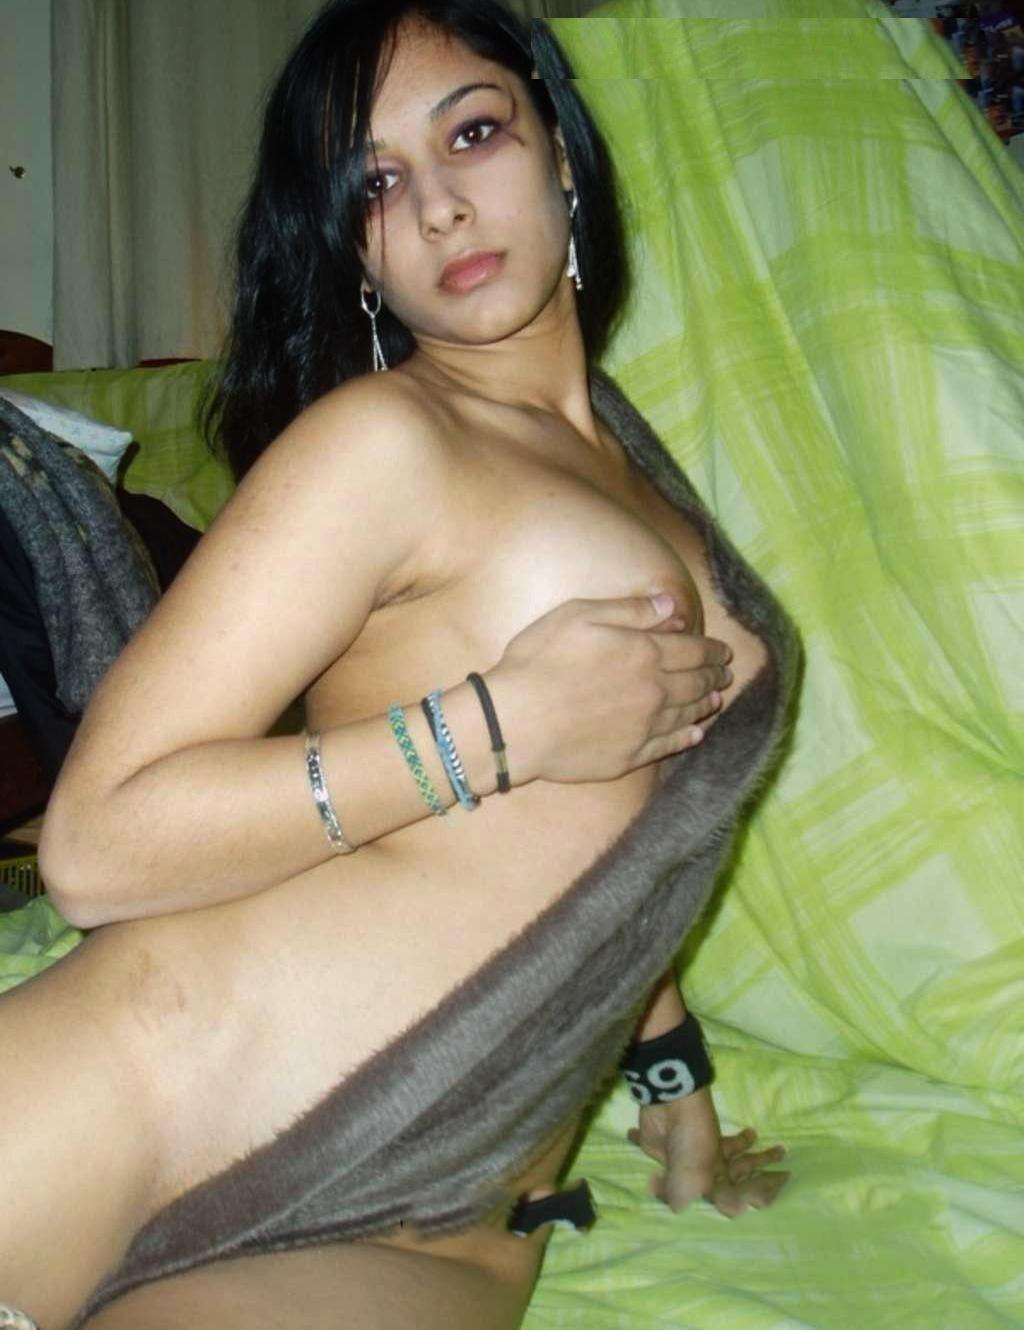 maine jijju se apni choot ka kachumar banbaya | big sexy boobs